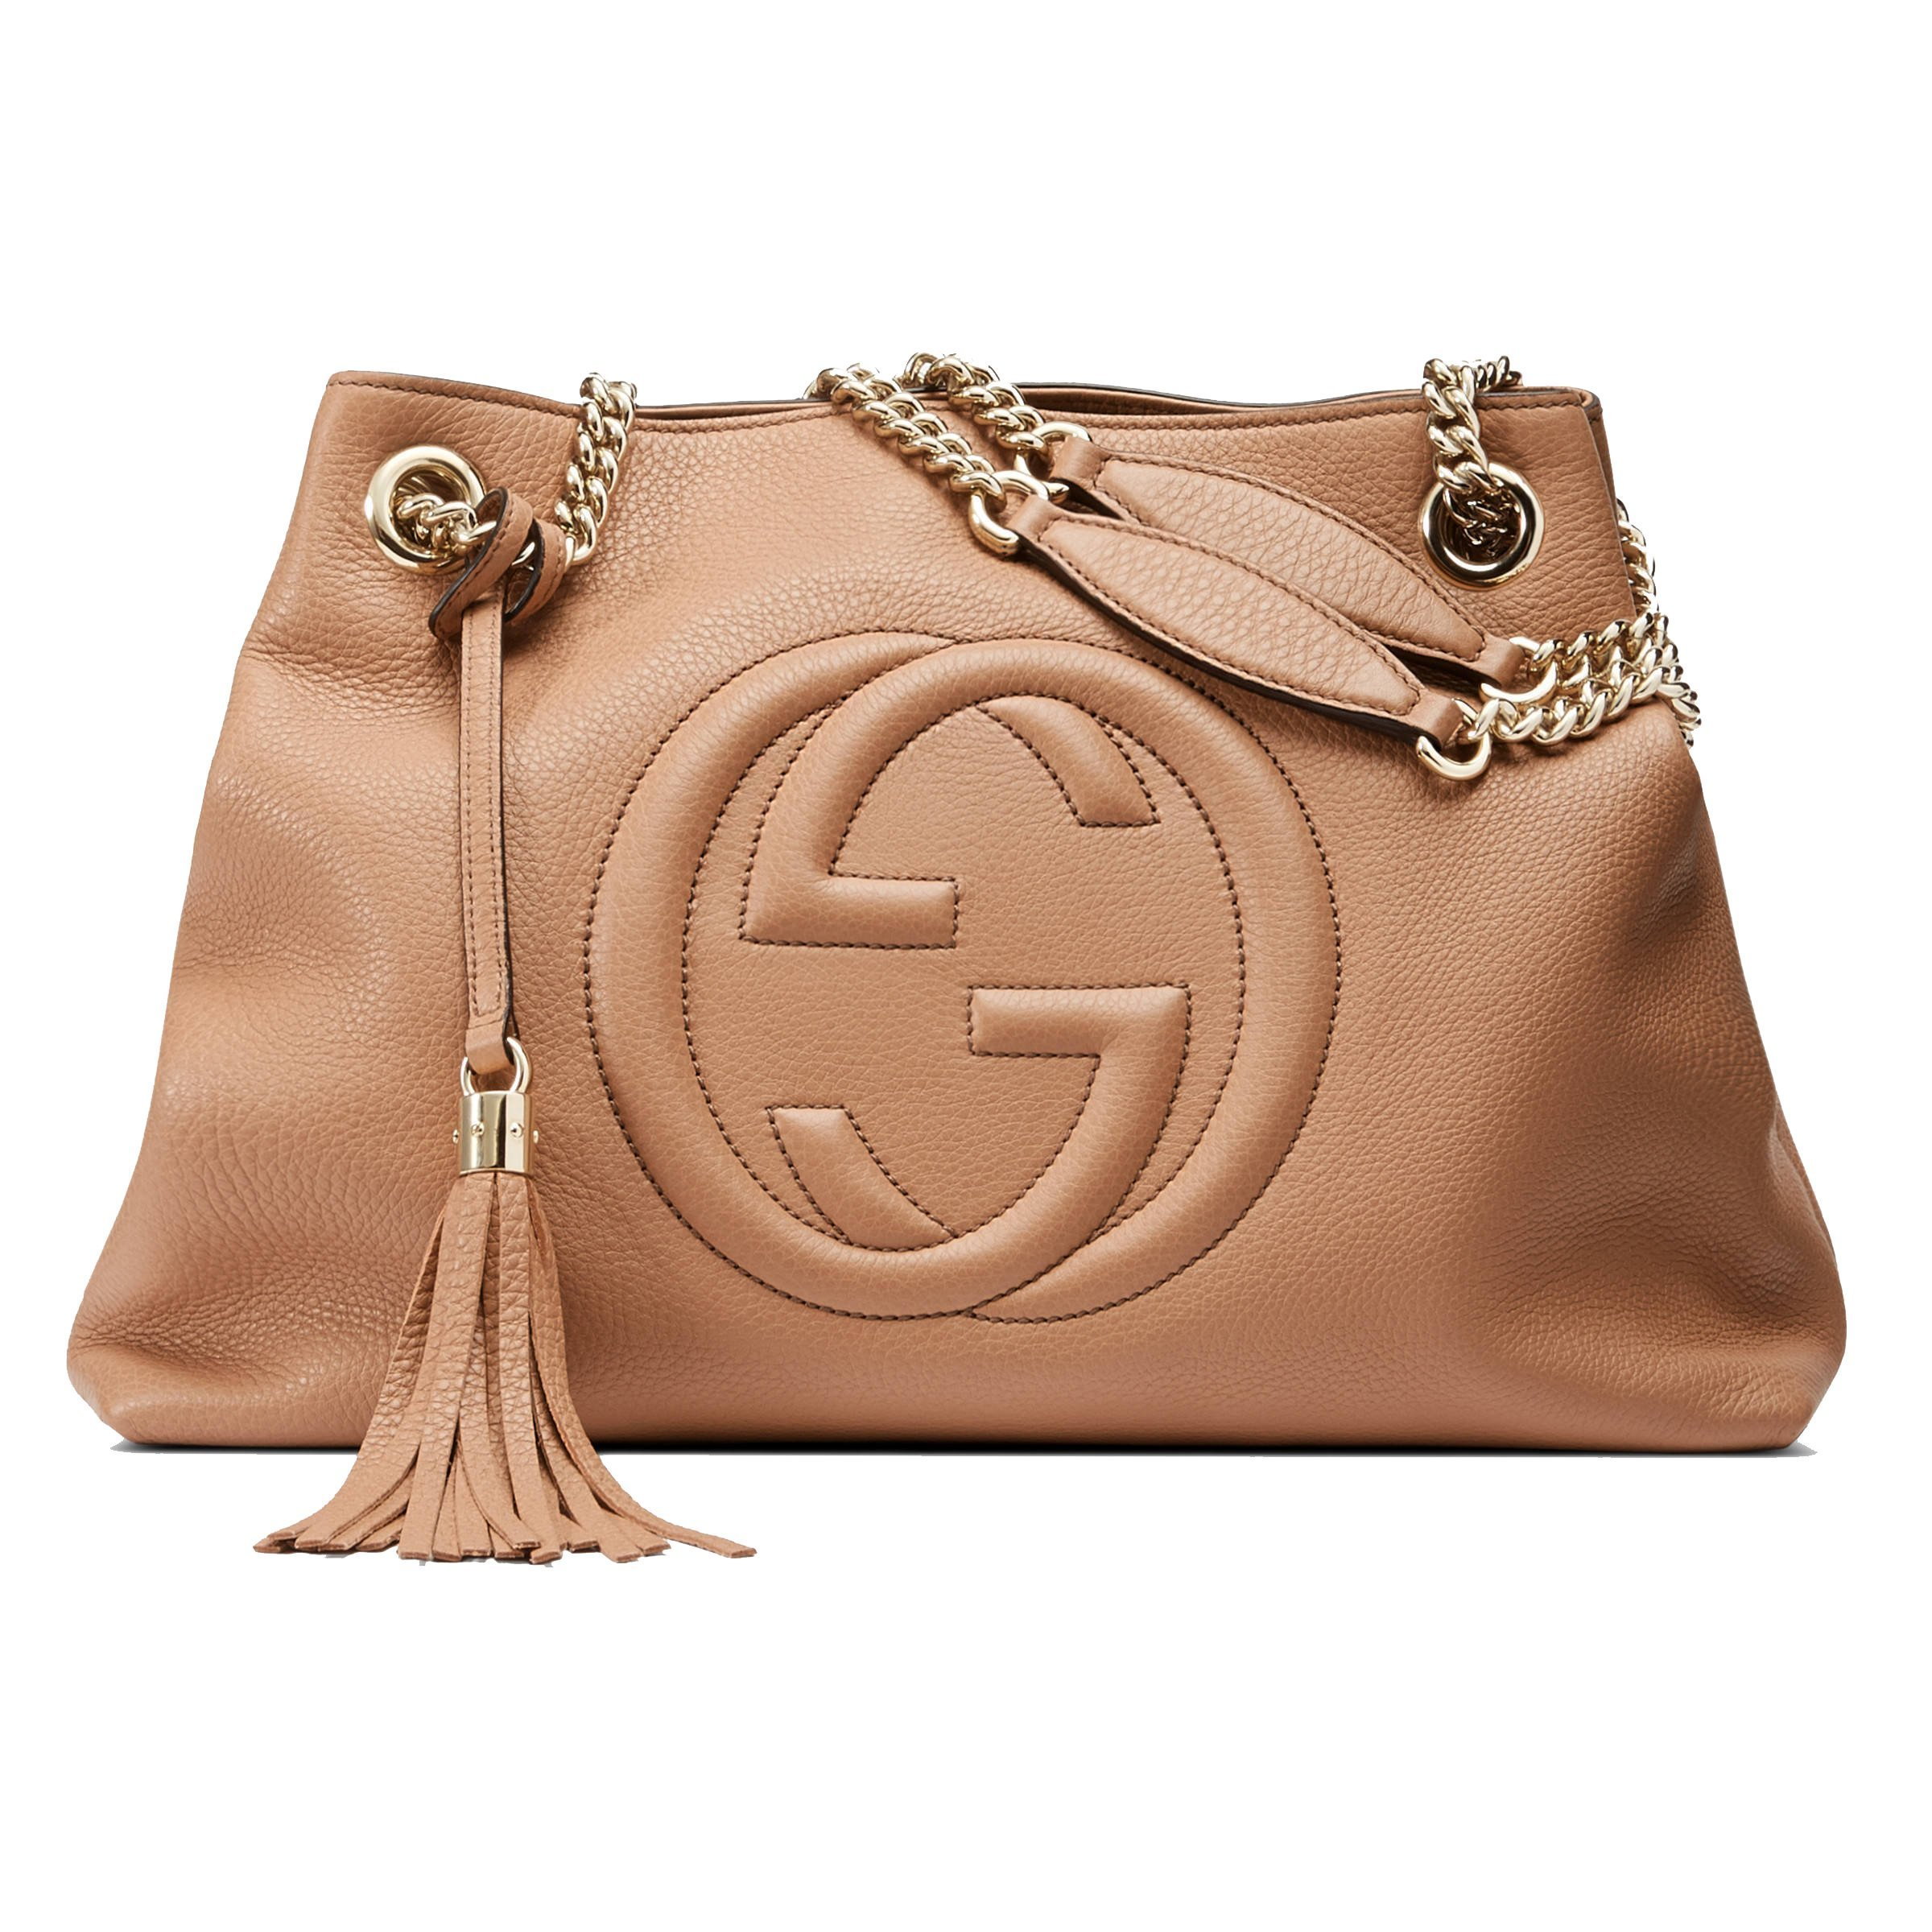 dd7d64ee3f45 Gucci Soho Interlocking G Leather Chain Shoulder Bag 308982 Camelia Beige